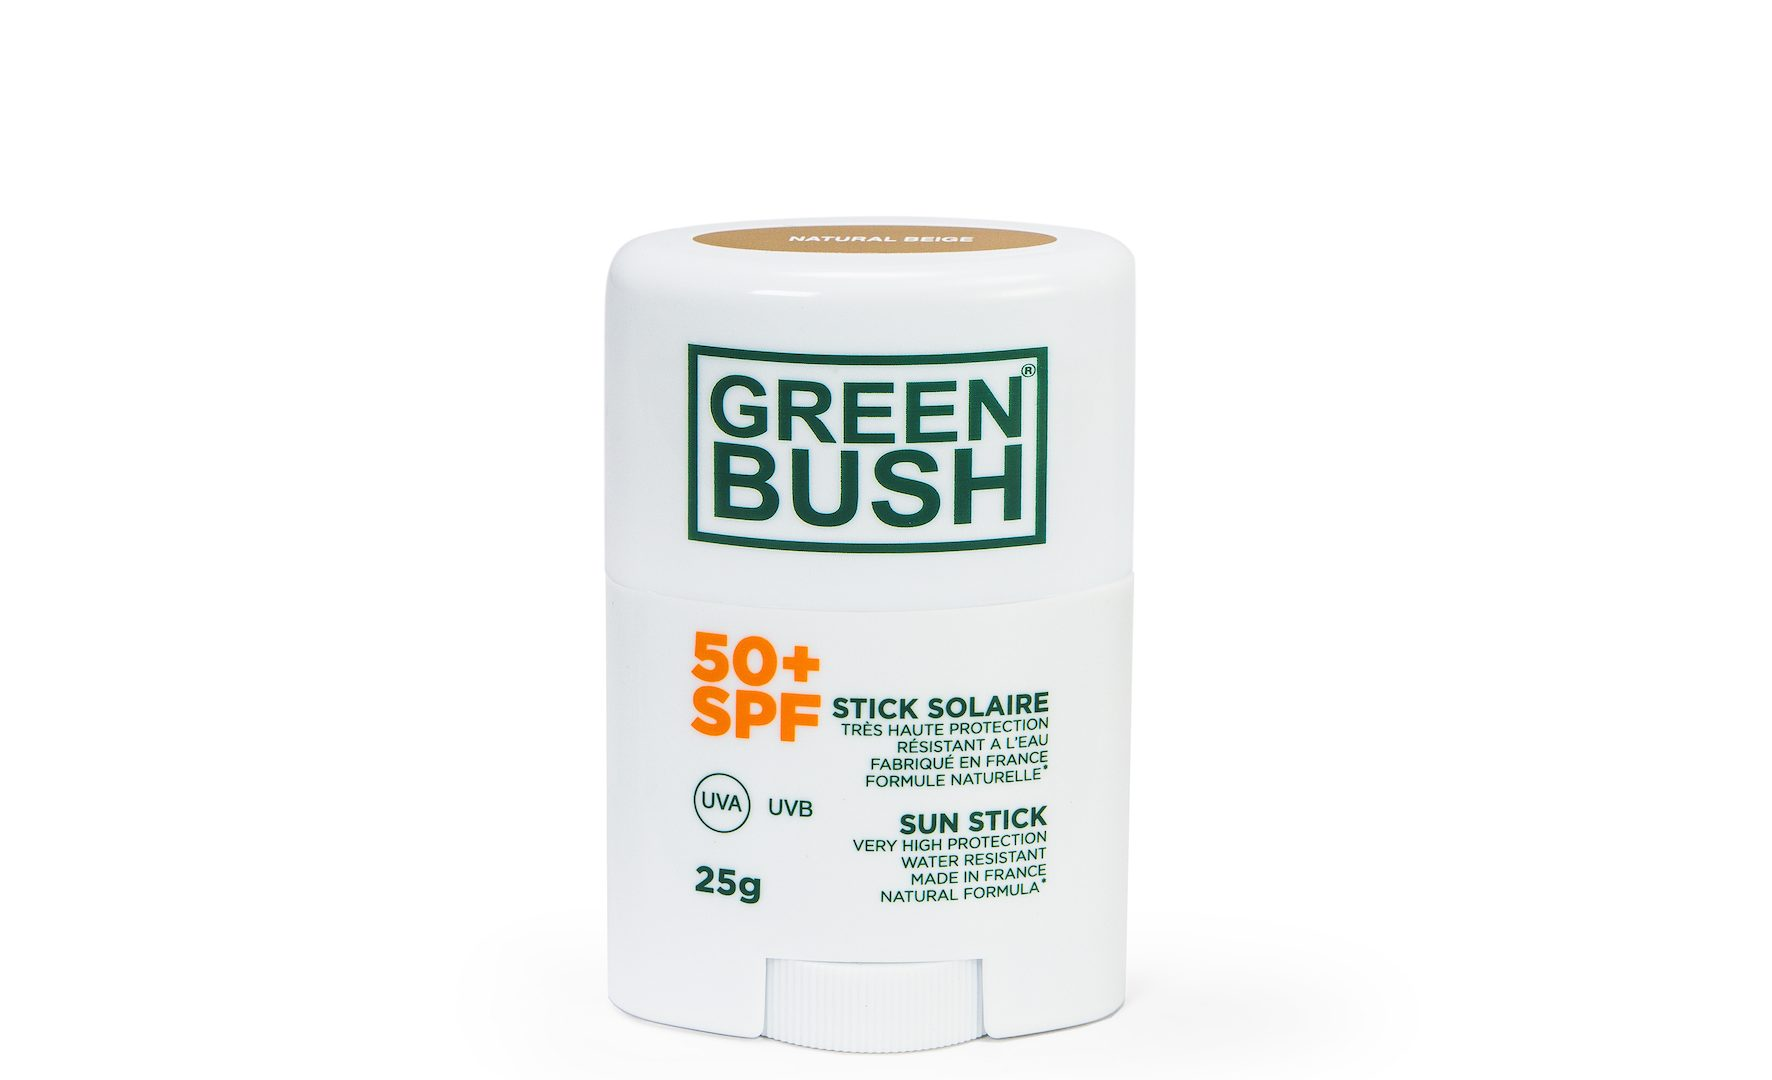 Greenbush SS20 Sun Cream Preview